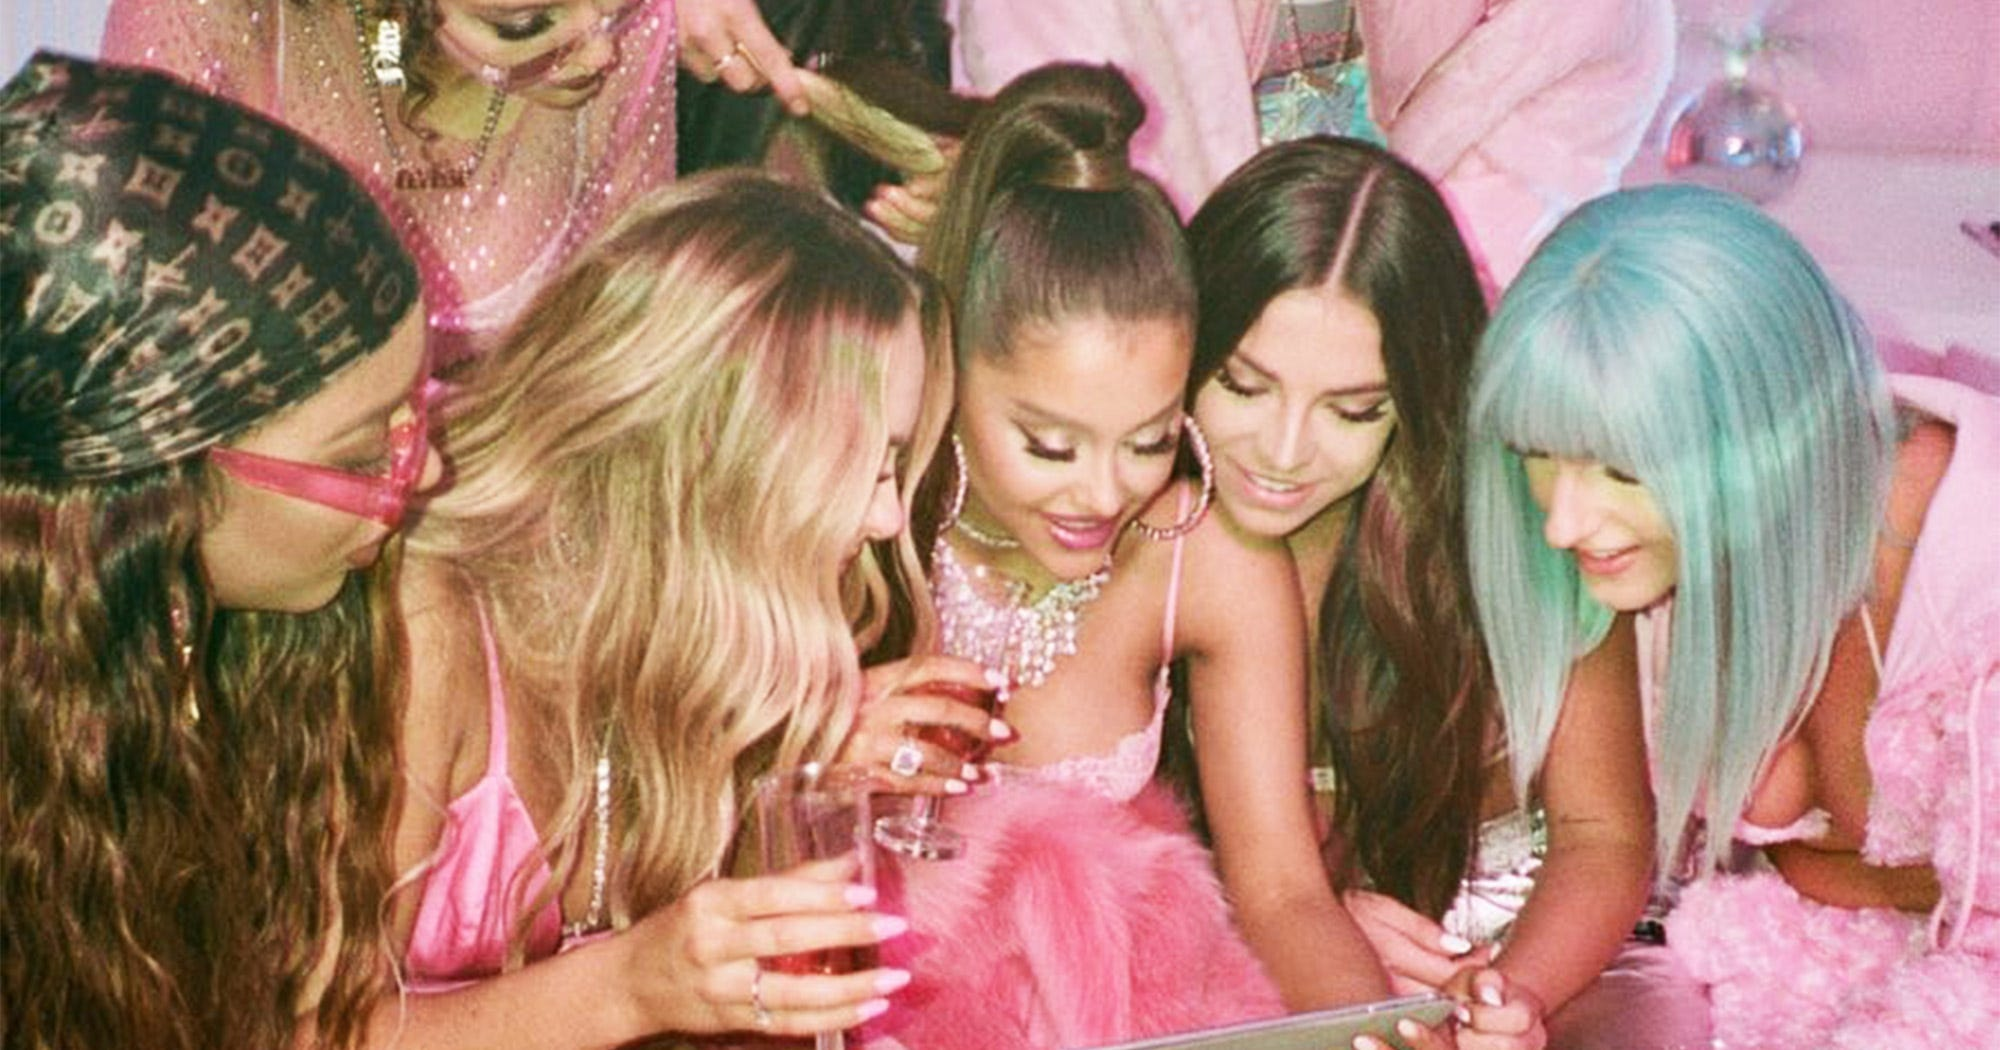 Who Are The Girls In 7 Ariana Grande 7 Rings Video